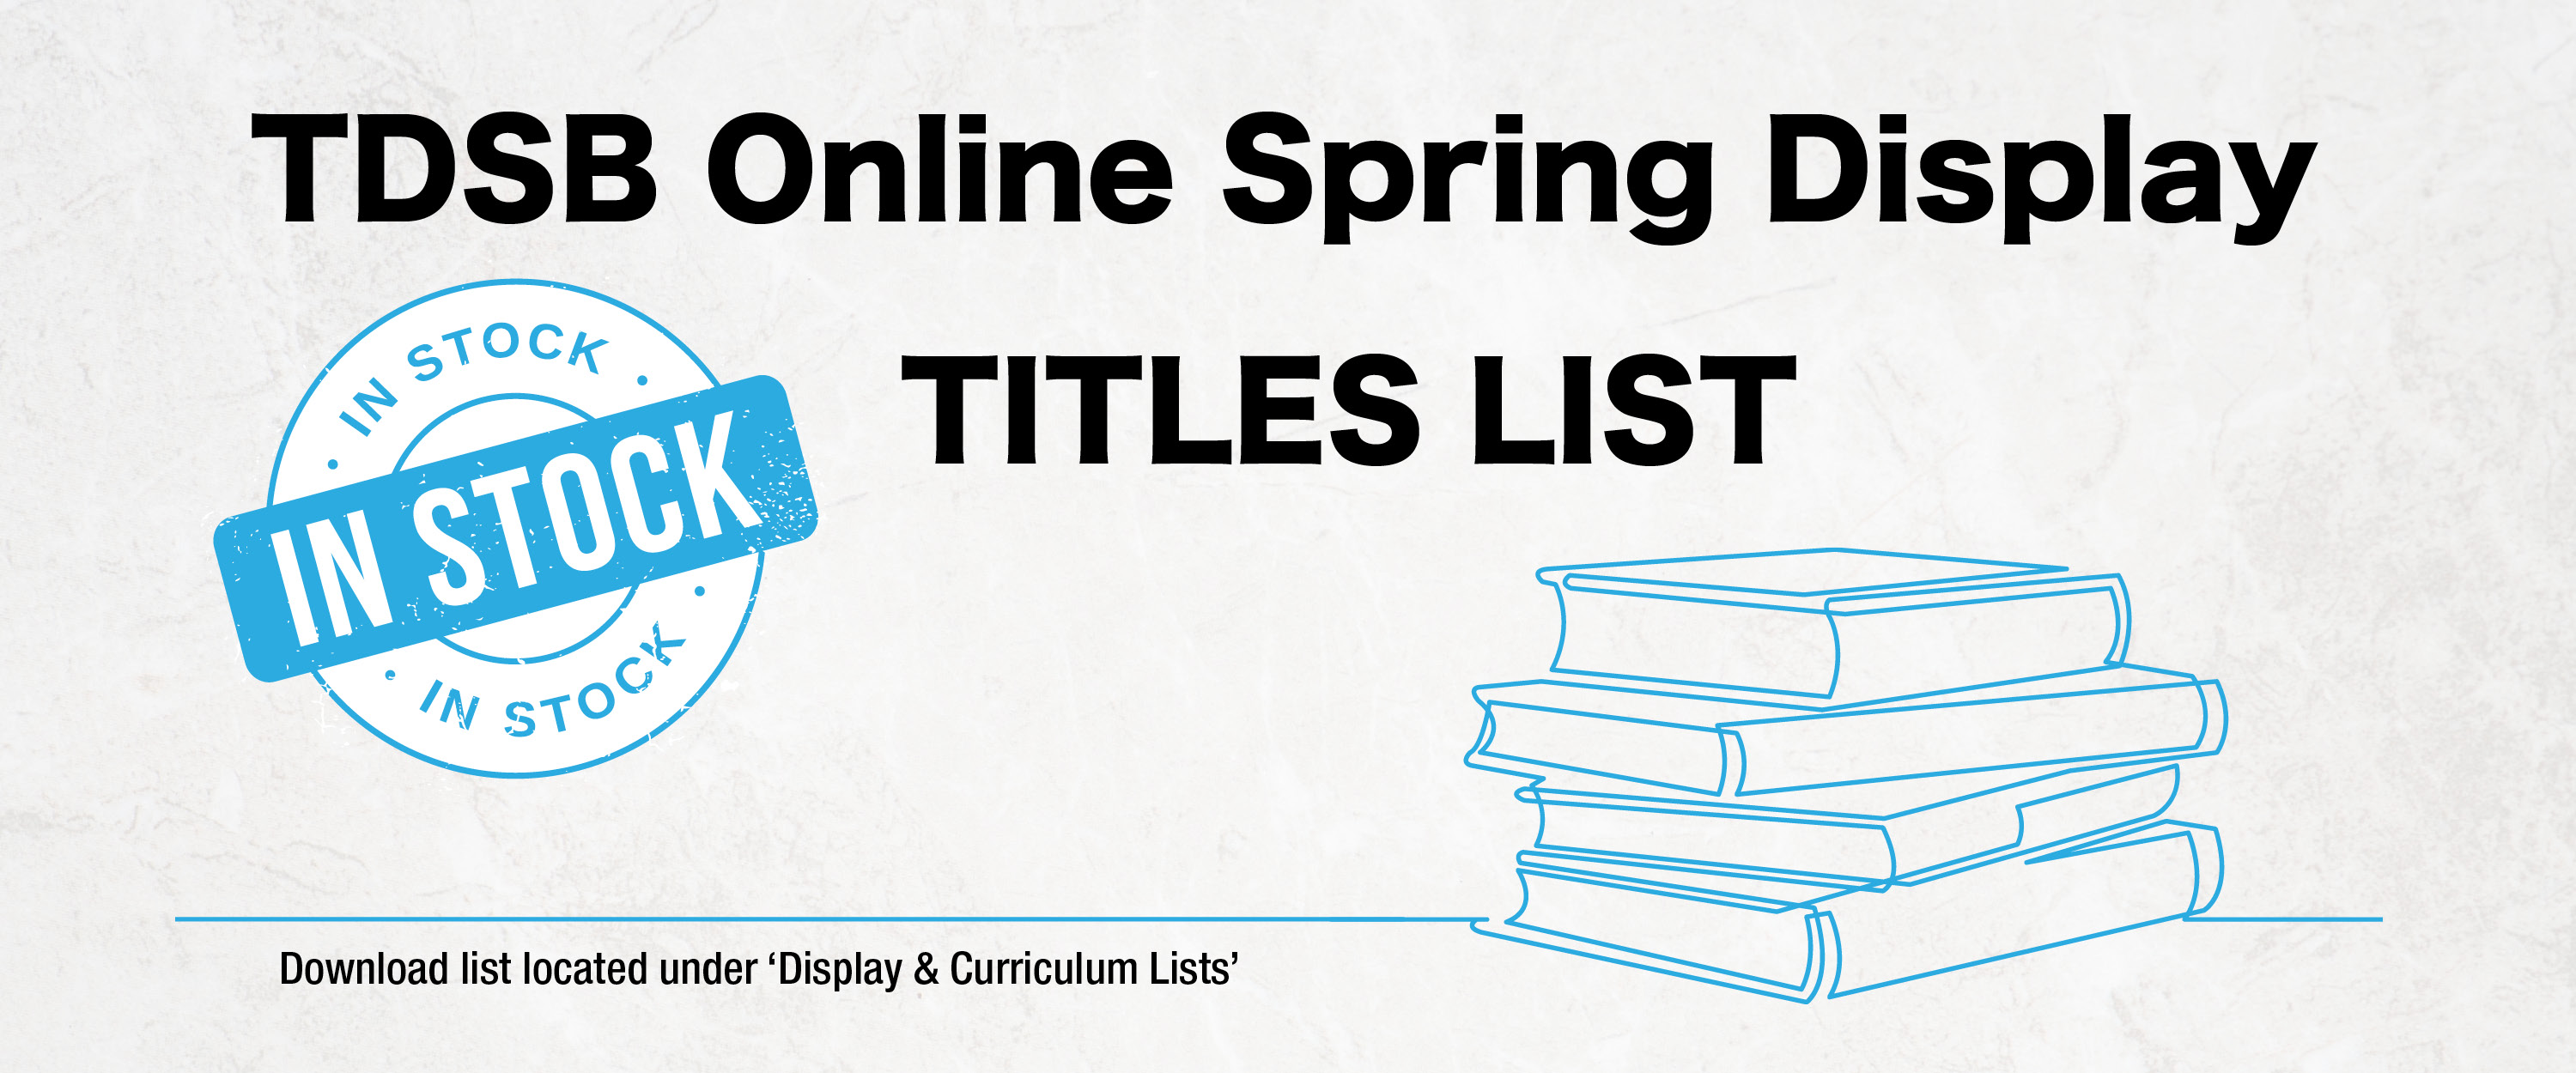 TDSB Spring Display In Stock List